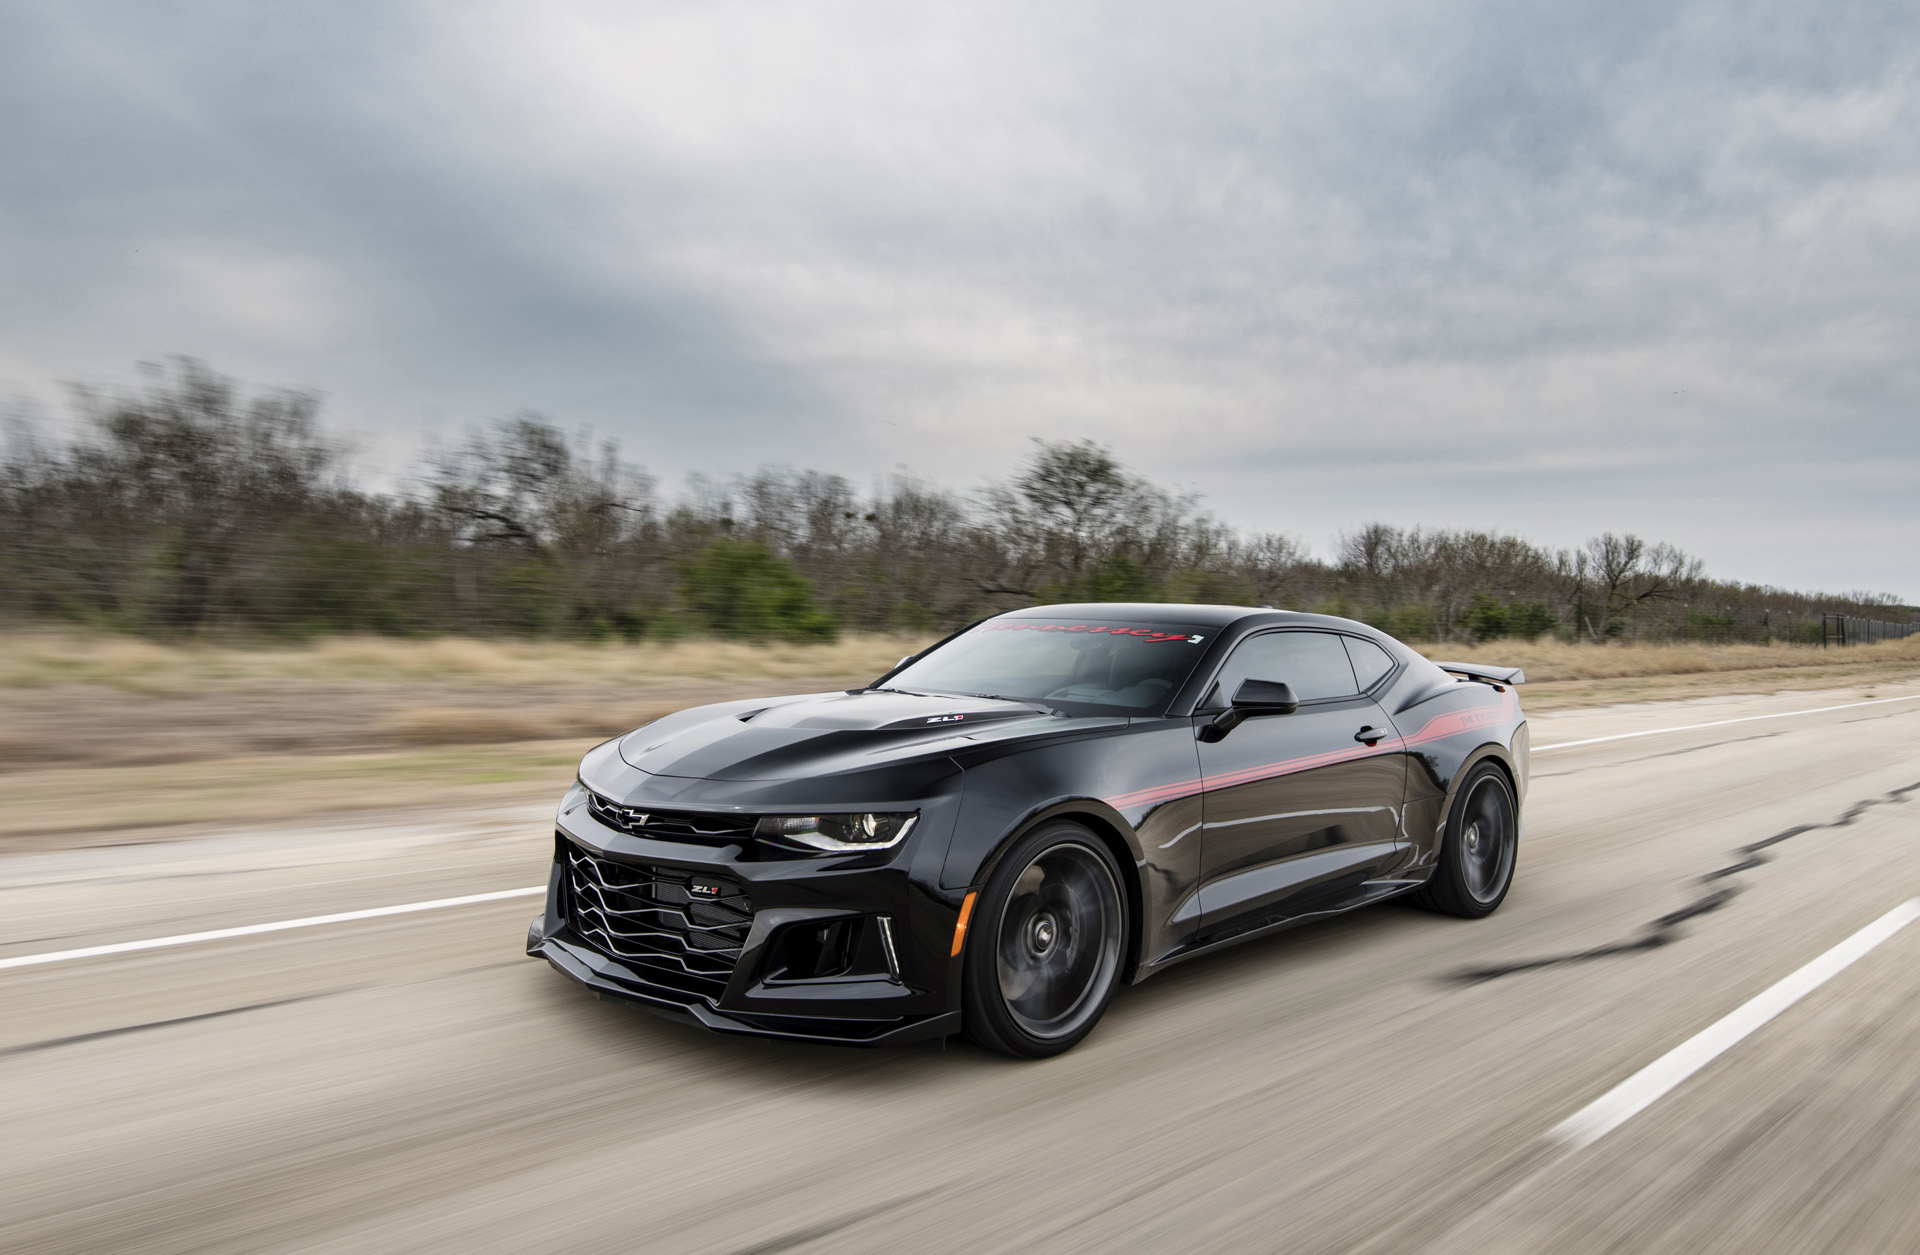 Hennessey Exorcist Camaro ZL1 Reaches Top Speed Of 217